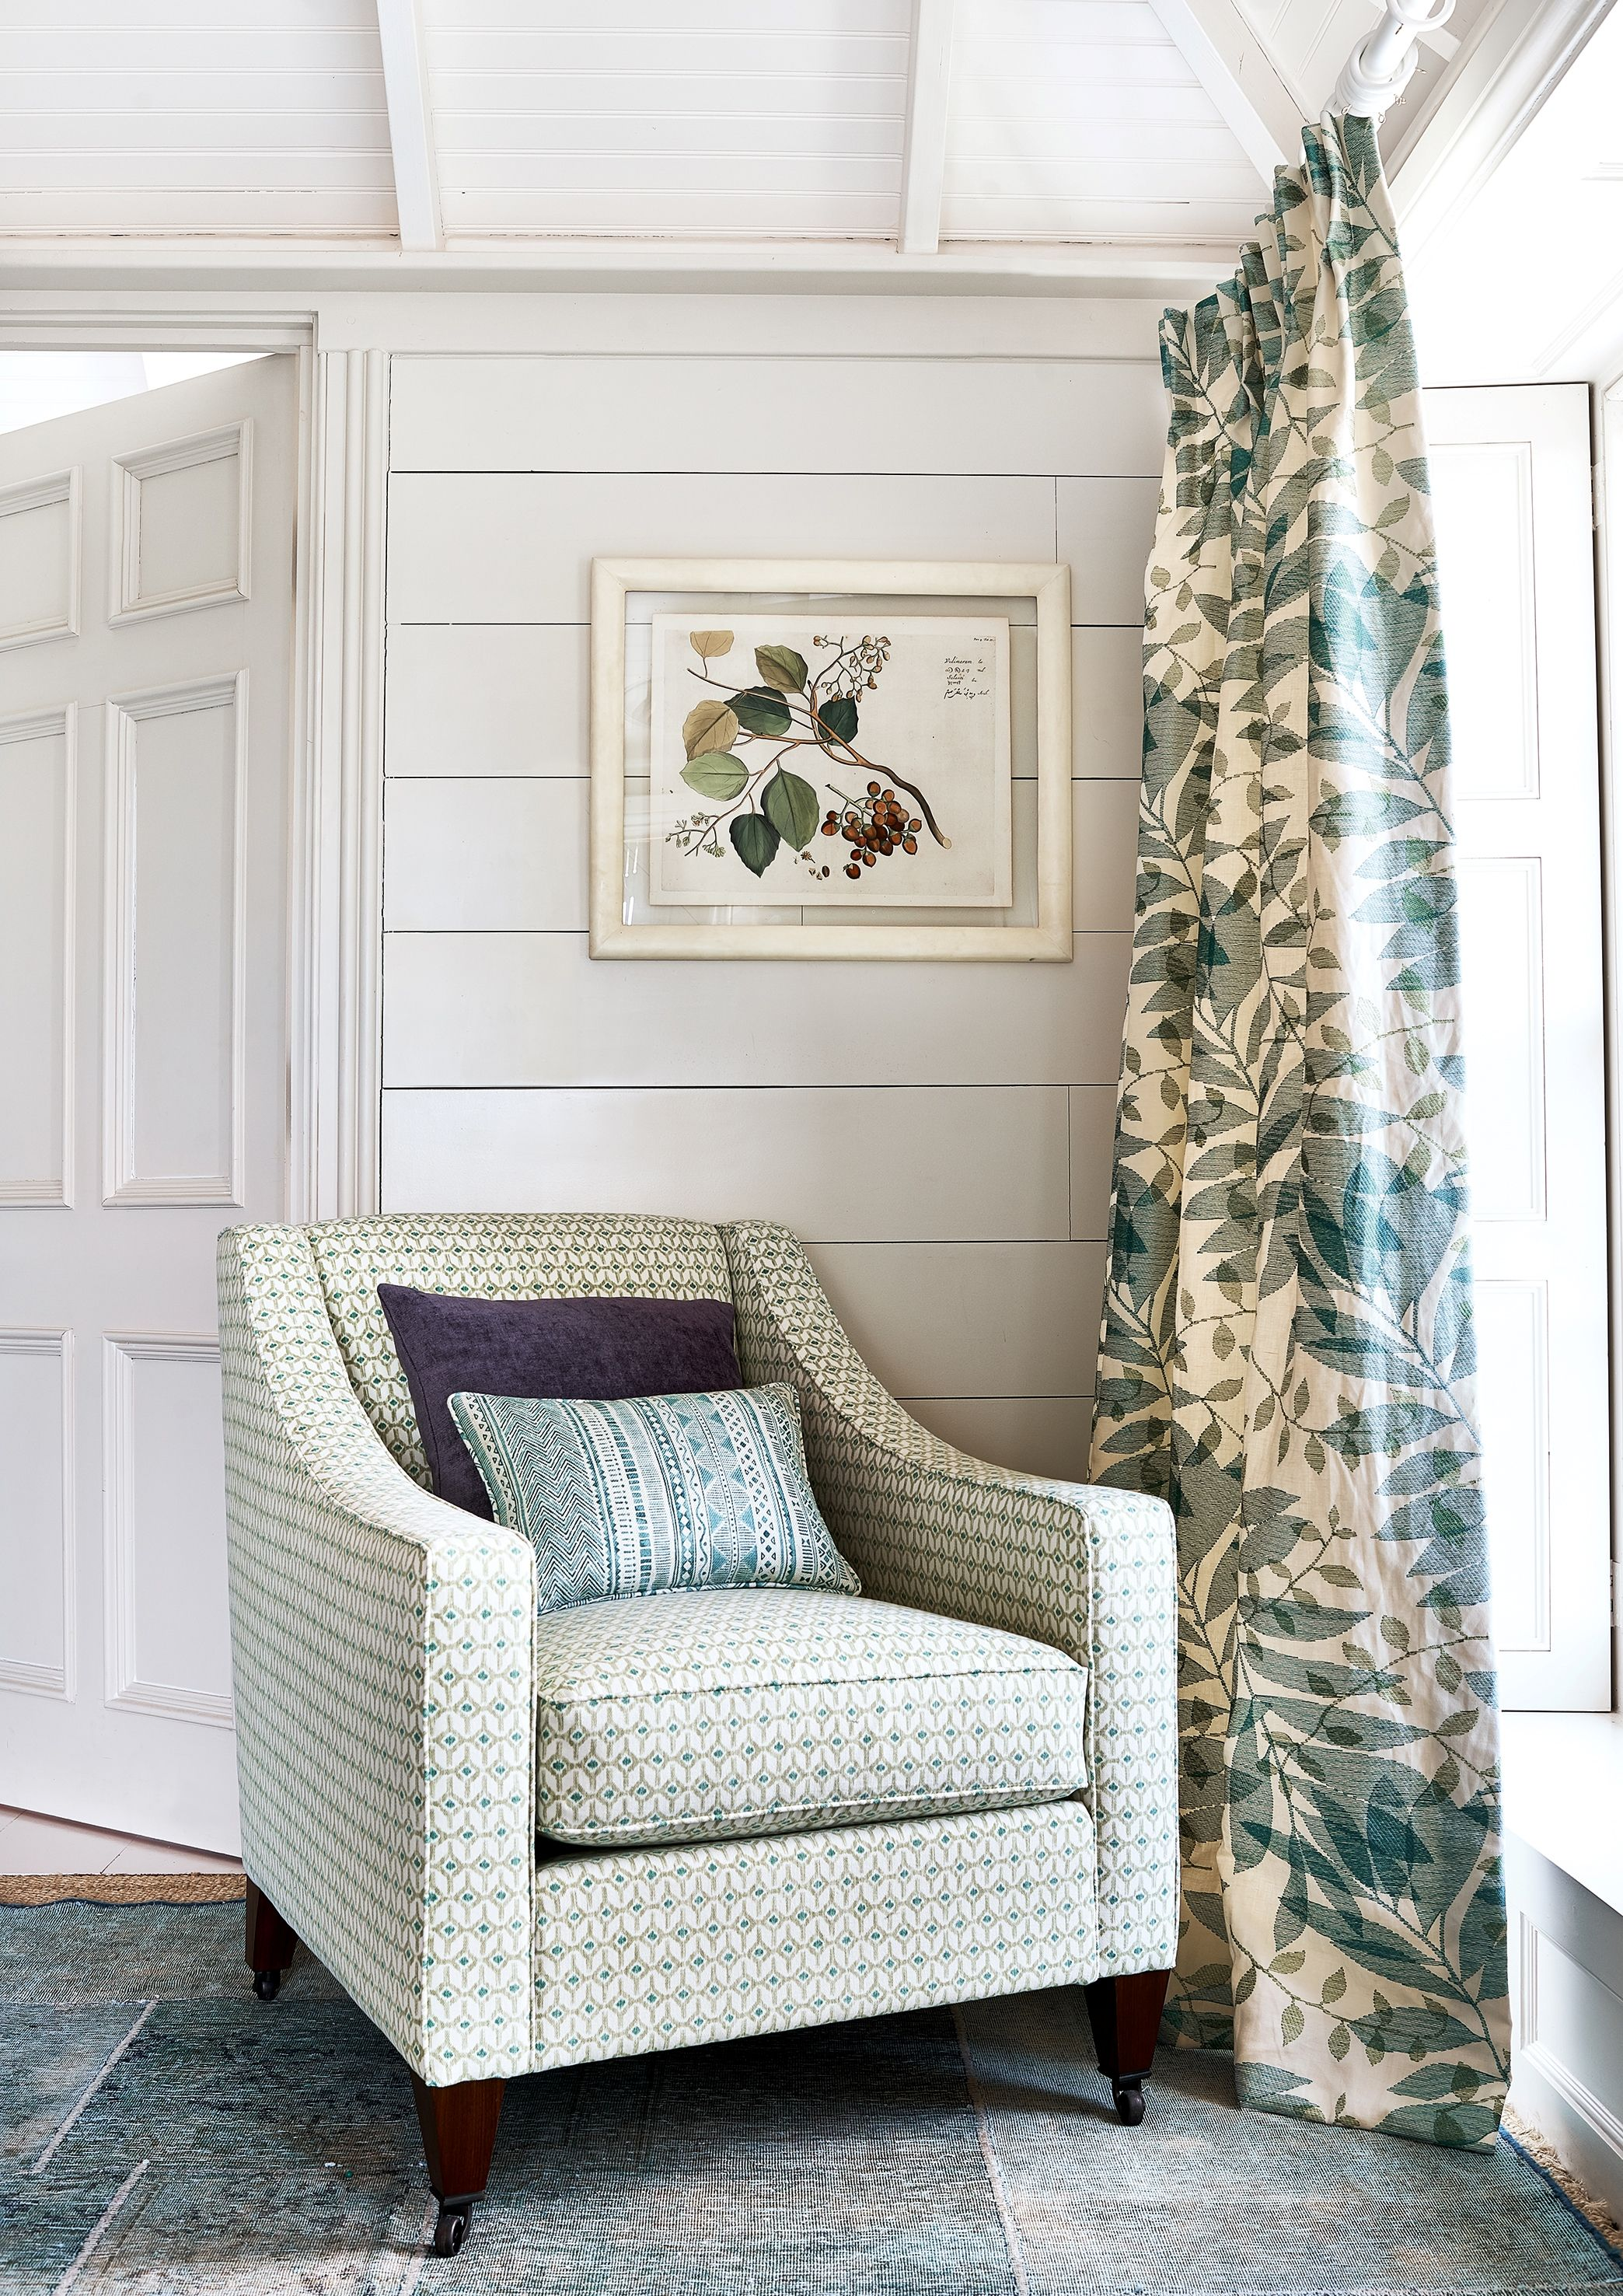 Fabrics From The Indira Collection By Jane Churchill Interior Home Interior Design House Interior